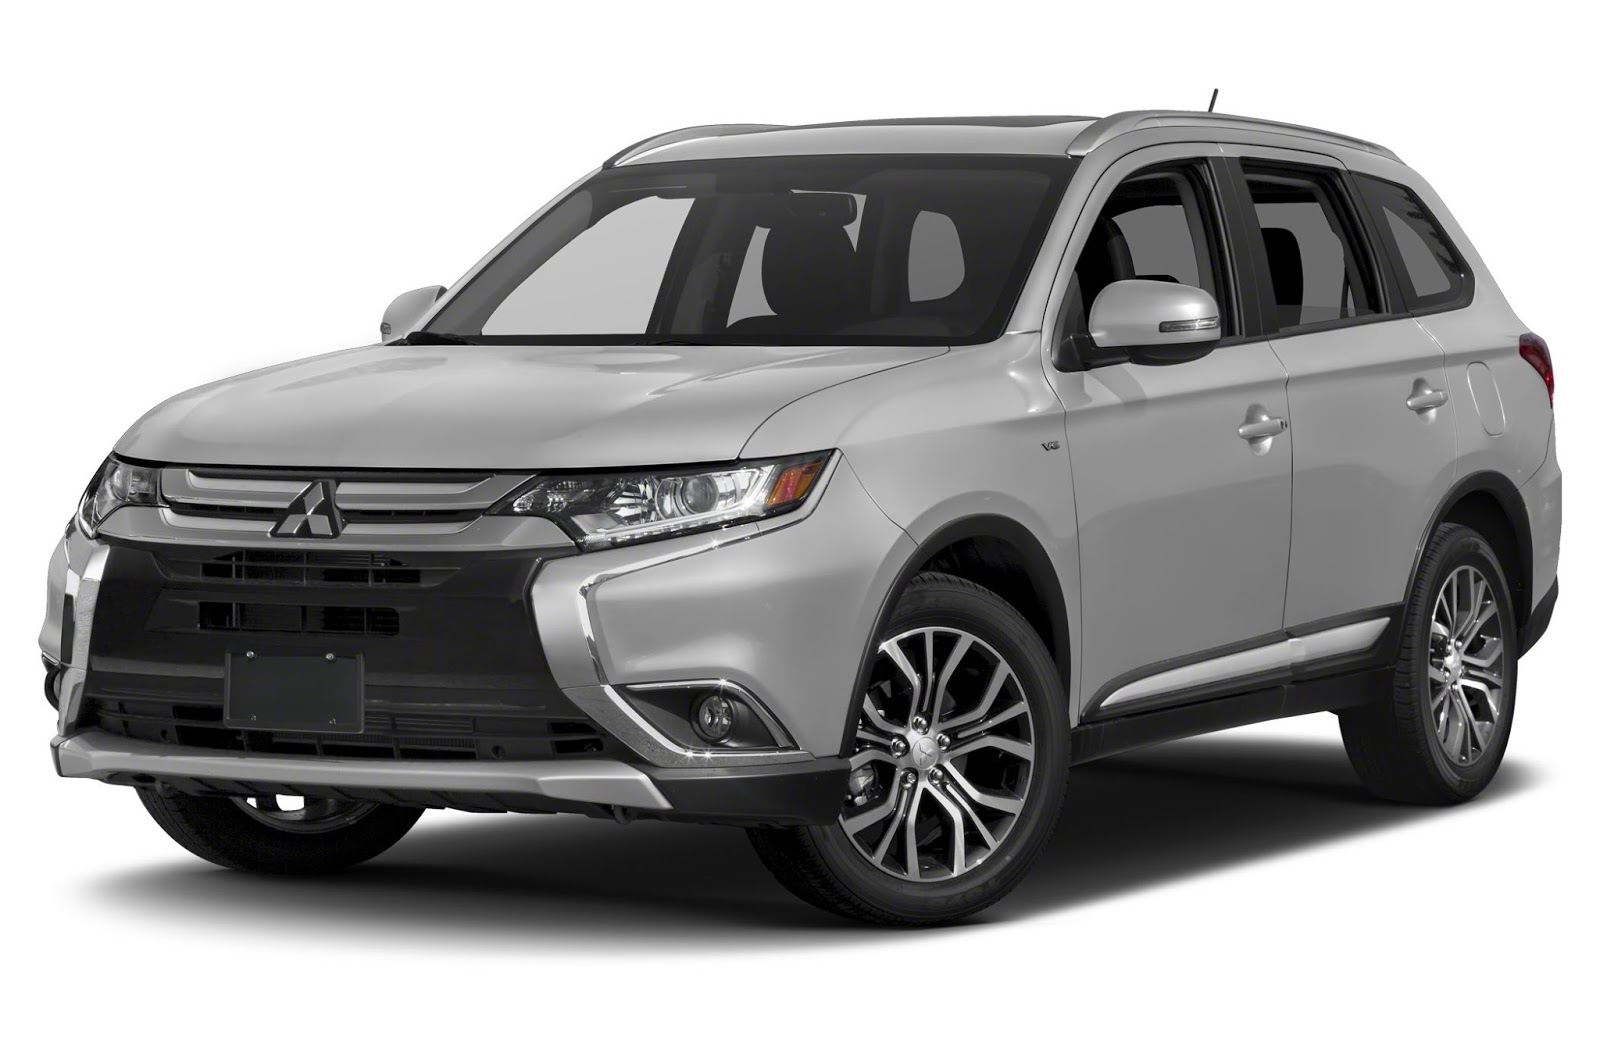 2020TECH: What We Have On The 2017 Mitsubishi Outlander V-6 AWD Vehicle